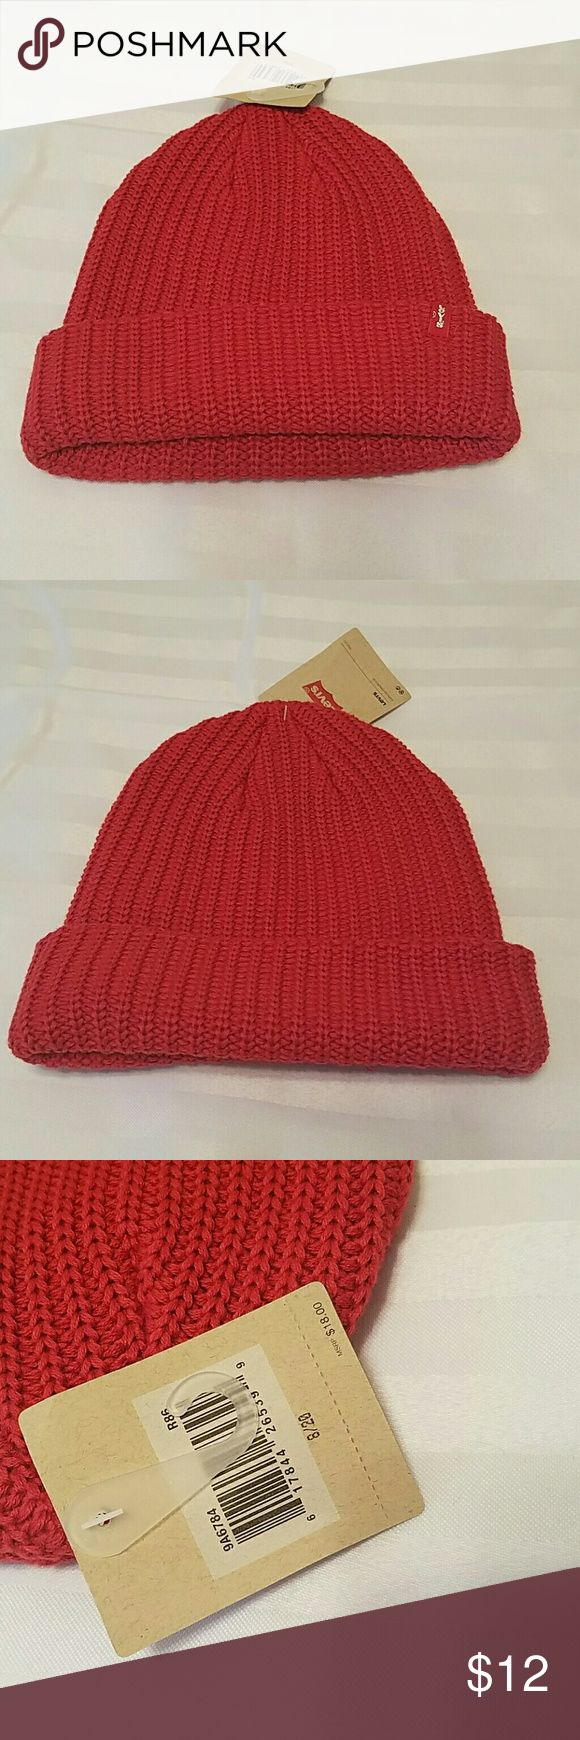 Youth Levi's Beanie. Size 8 to 20. NWT. Stretch Boys Levi's Beanie Size 8 to 20 NWT Red Stretch Fit  I will Accept Reasonable Offers Levi's Accessories Hats